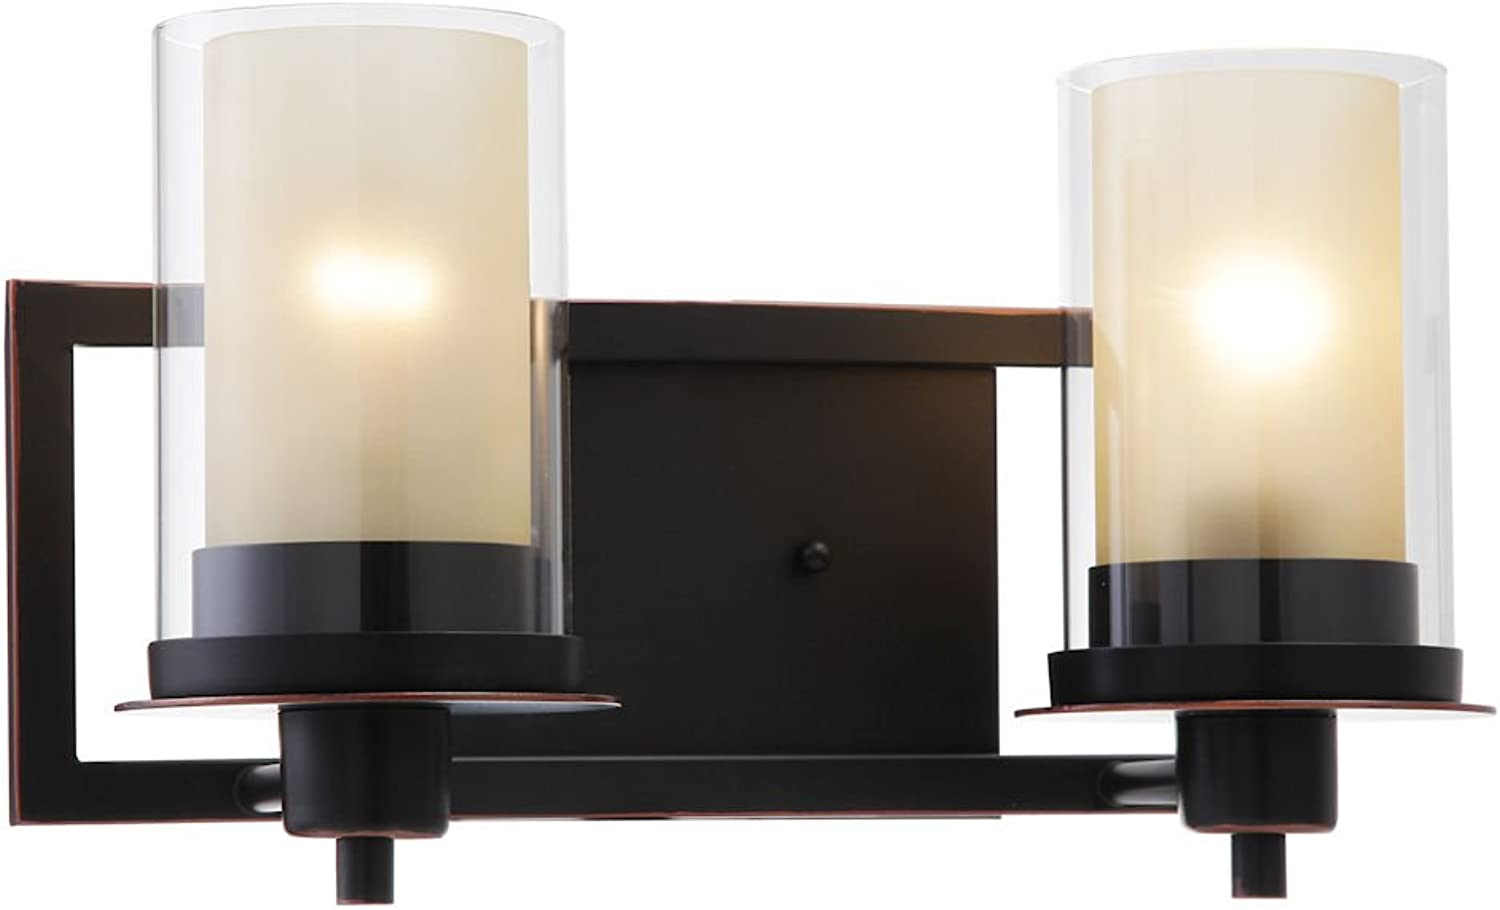 Designers Impressions Juno Oil Rubbed Bronze 2 Light Wall Sconce Bathroom Fixture with Amber and Clear Glass  73470